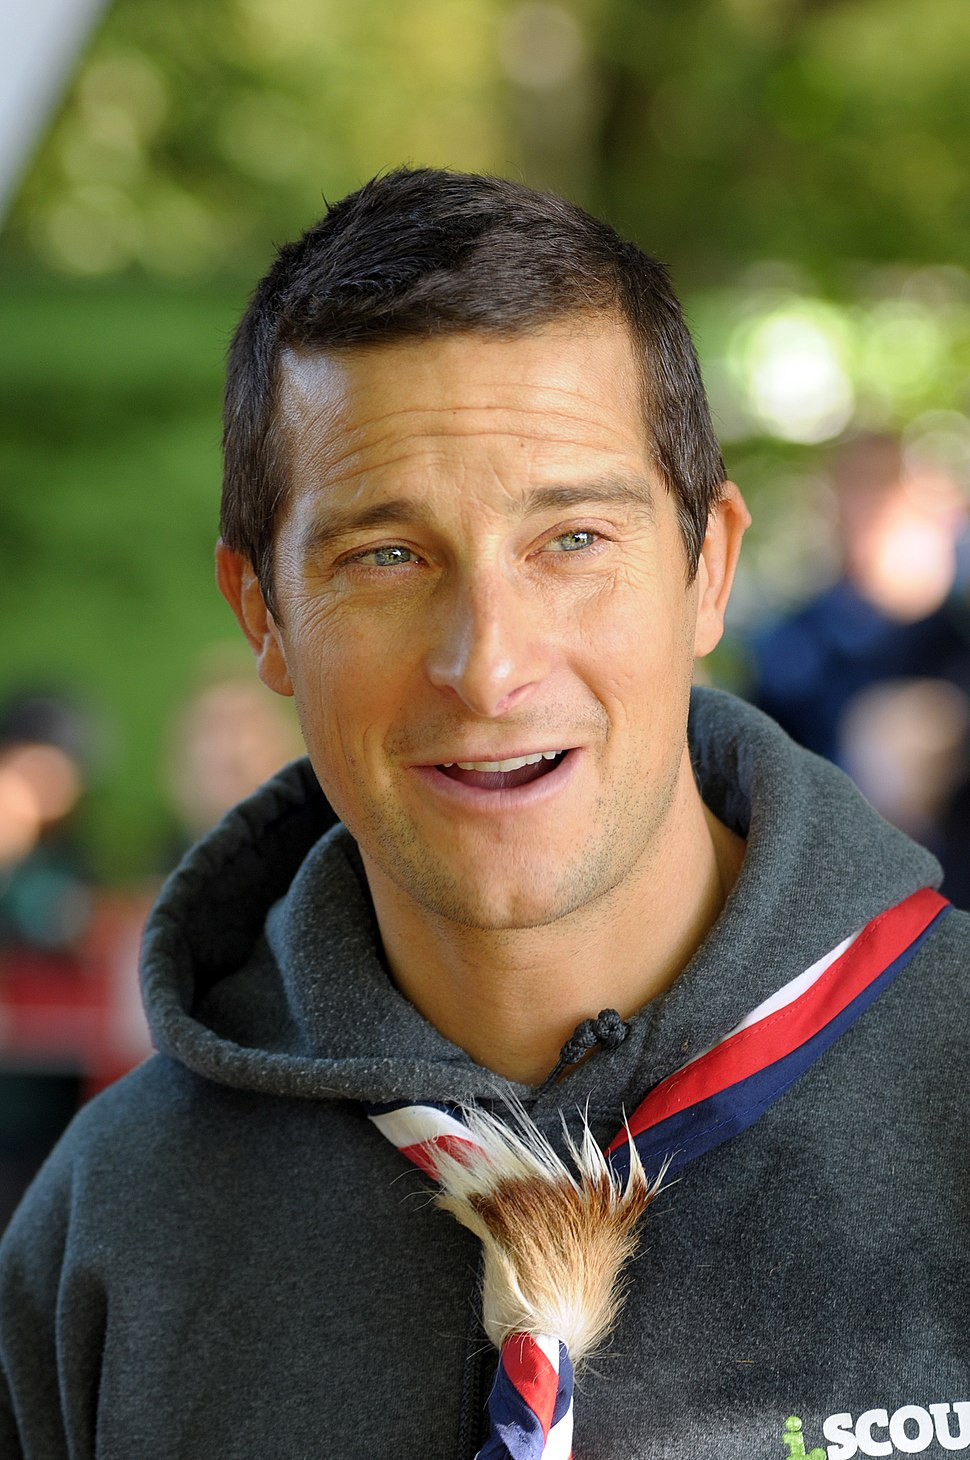 Coventry Scouts groups have a visit from Bear Grylls